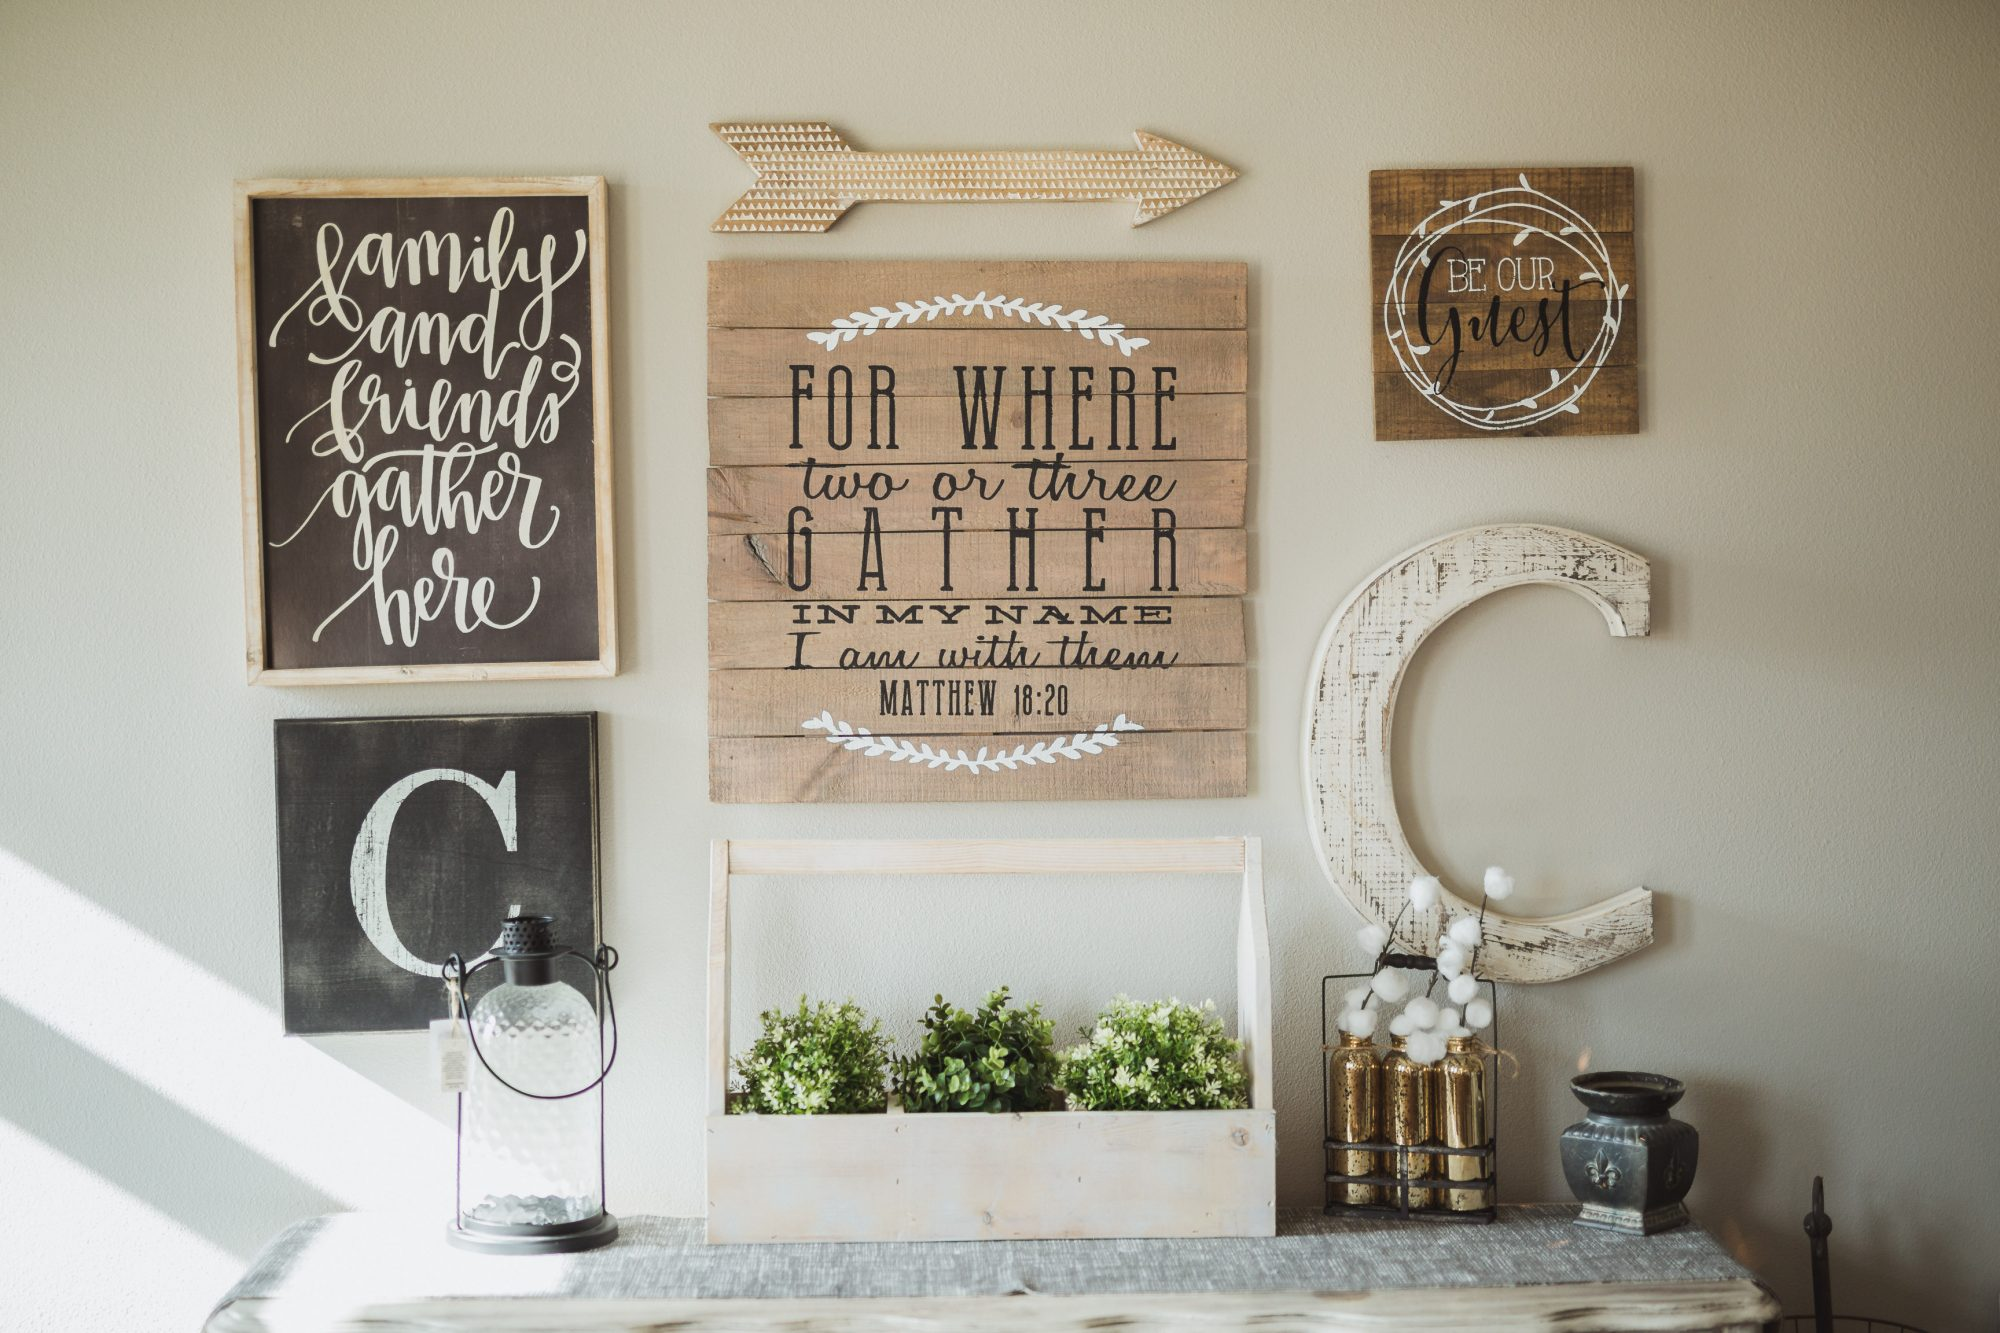 Word Art Signs in Home Decor